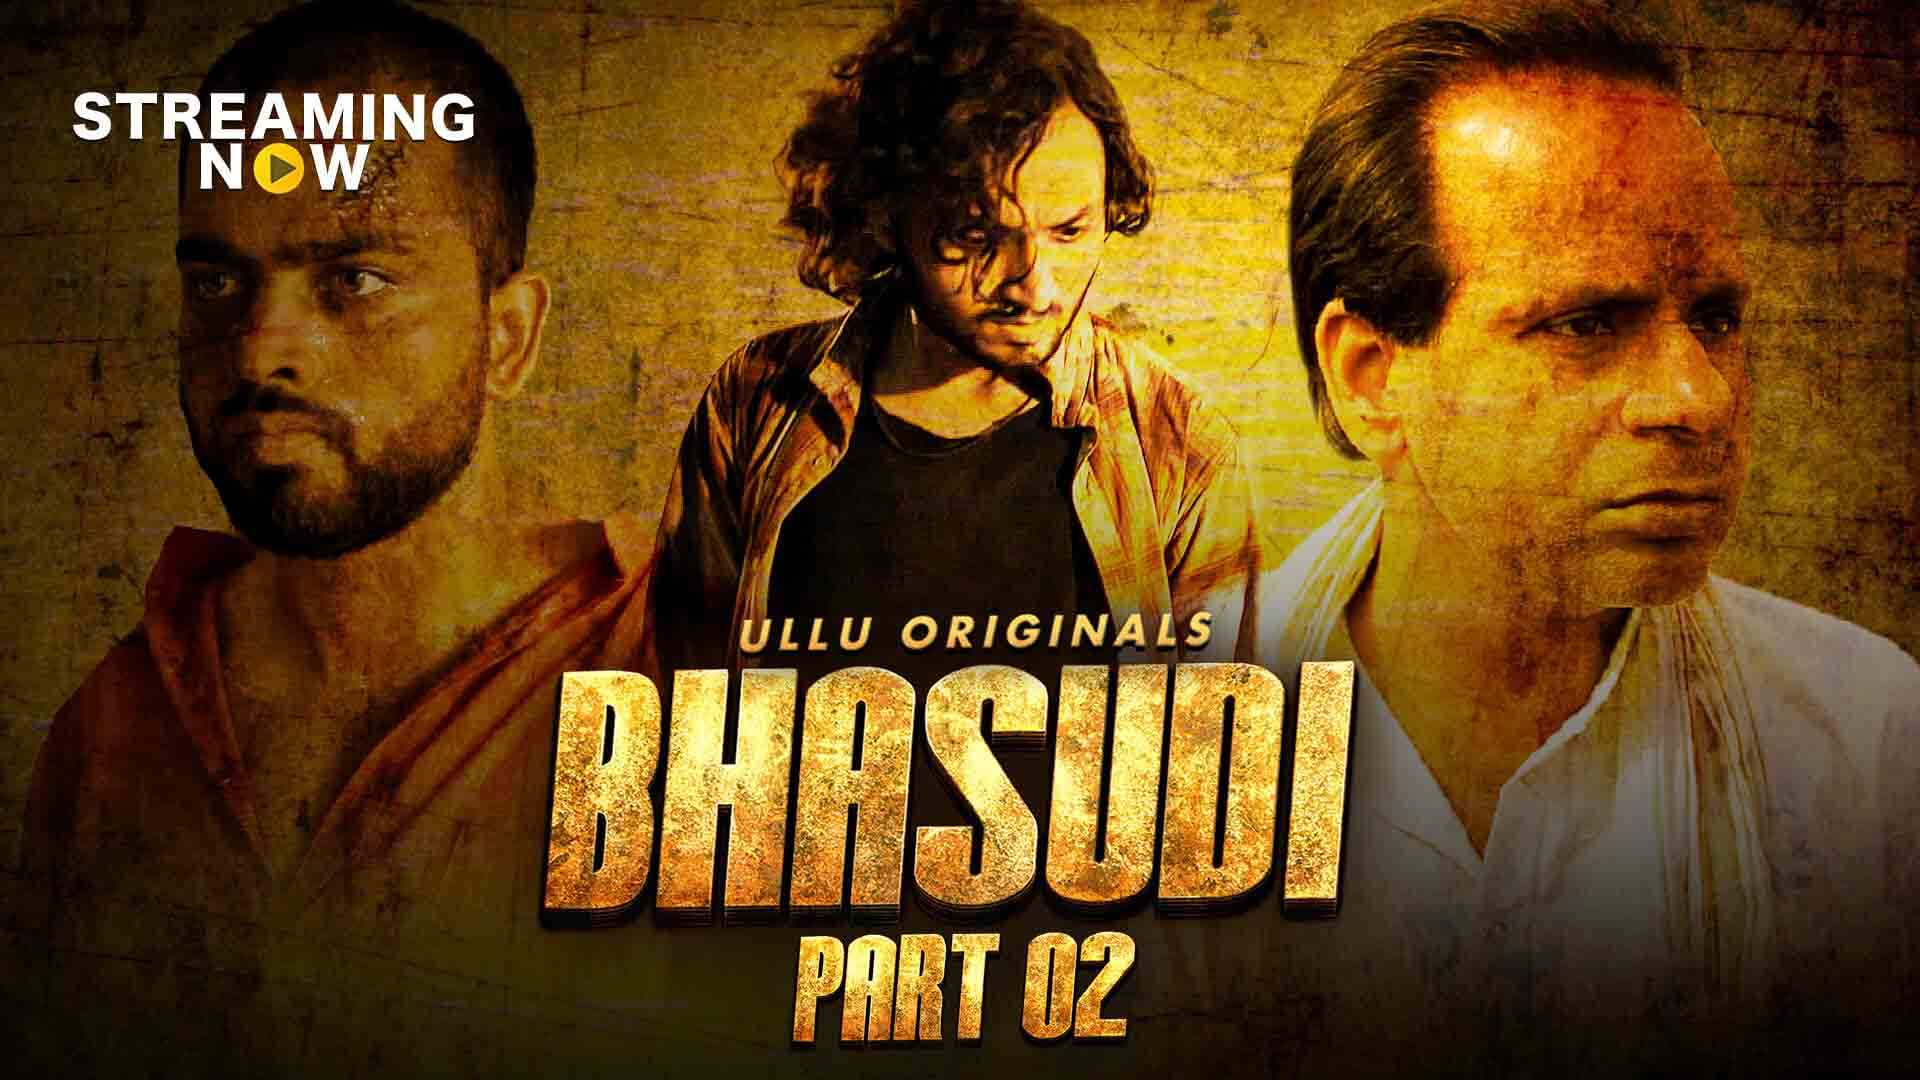 18+ Bhasudi Part 2 2020 S01 Hindi ULLU Originals Hot Web Series 720p HDRip 700MB x264 AAC